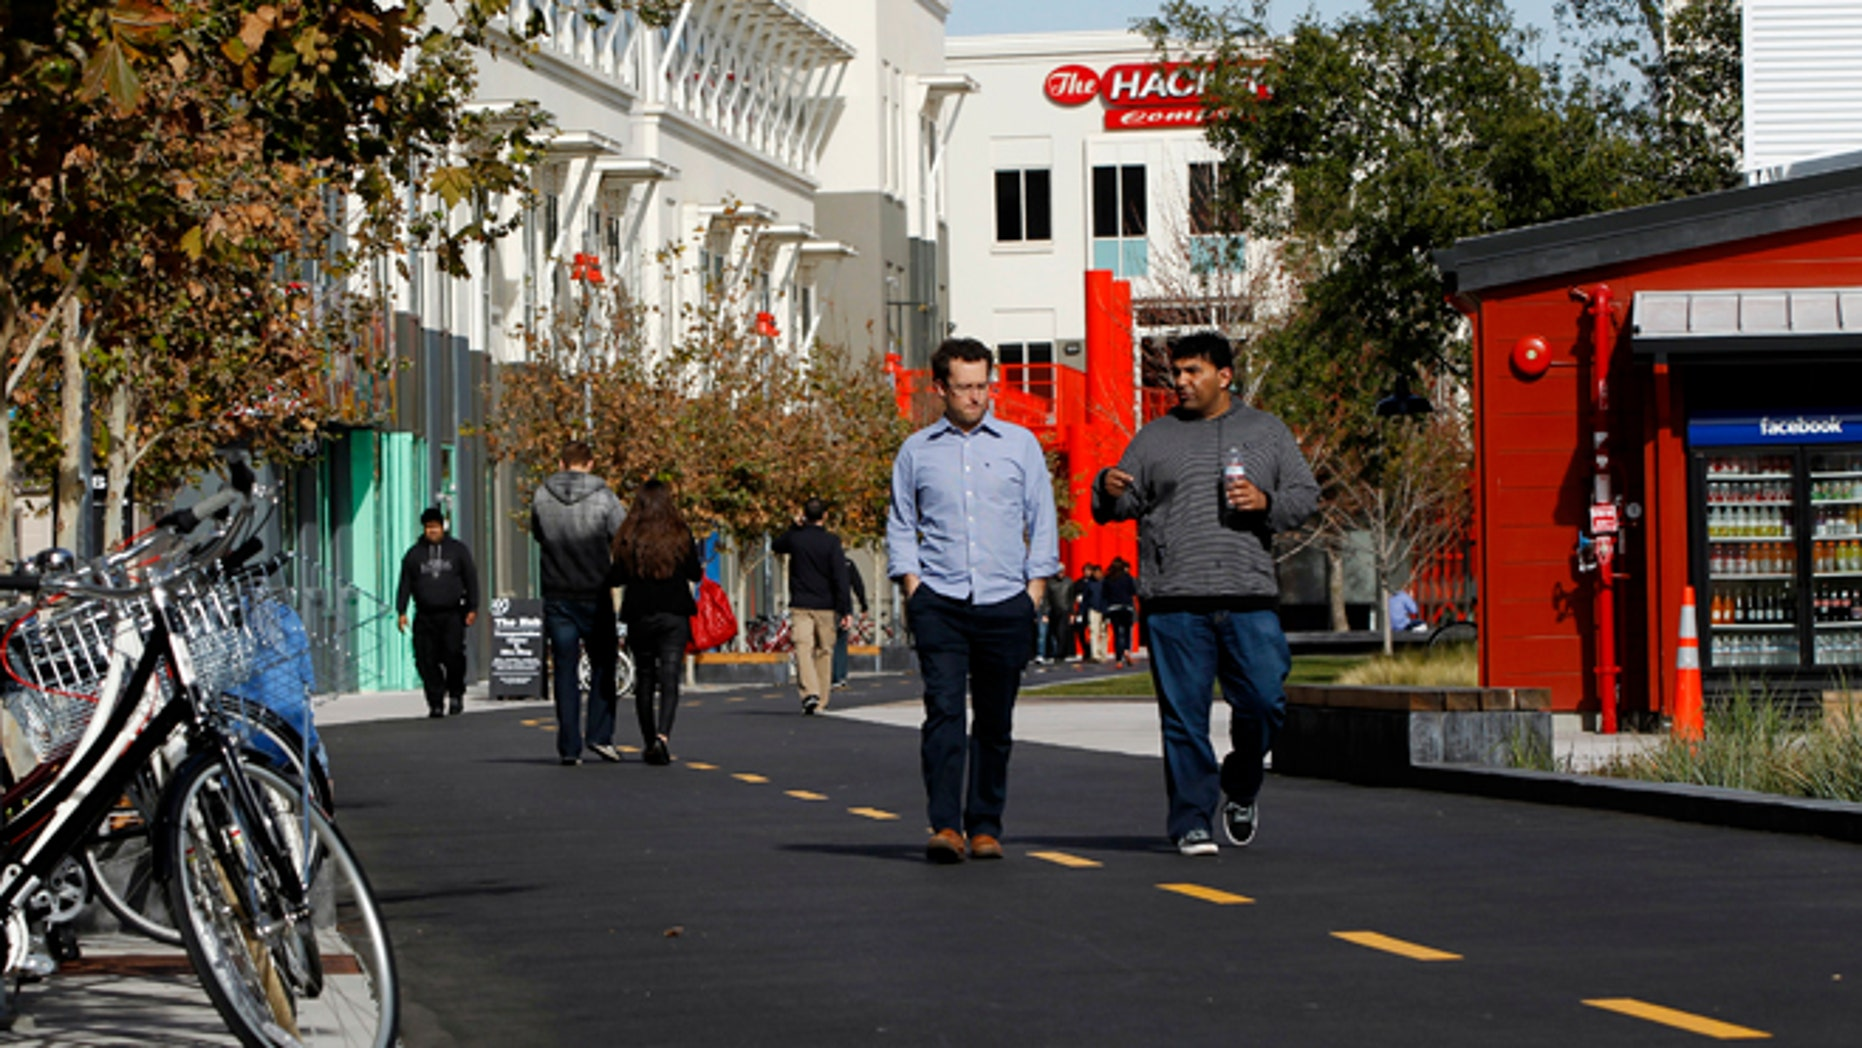 FILE: Employees walk along a walking and bicycle path at the Facebook headquarters in Menlo Park. The Internet giant said it would pay the salary of a police officer in the area.